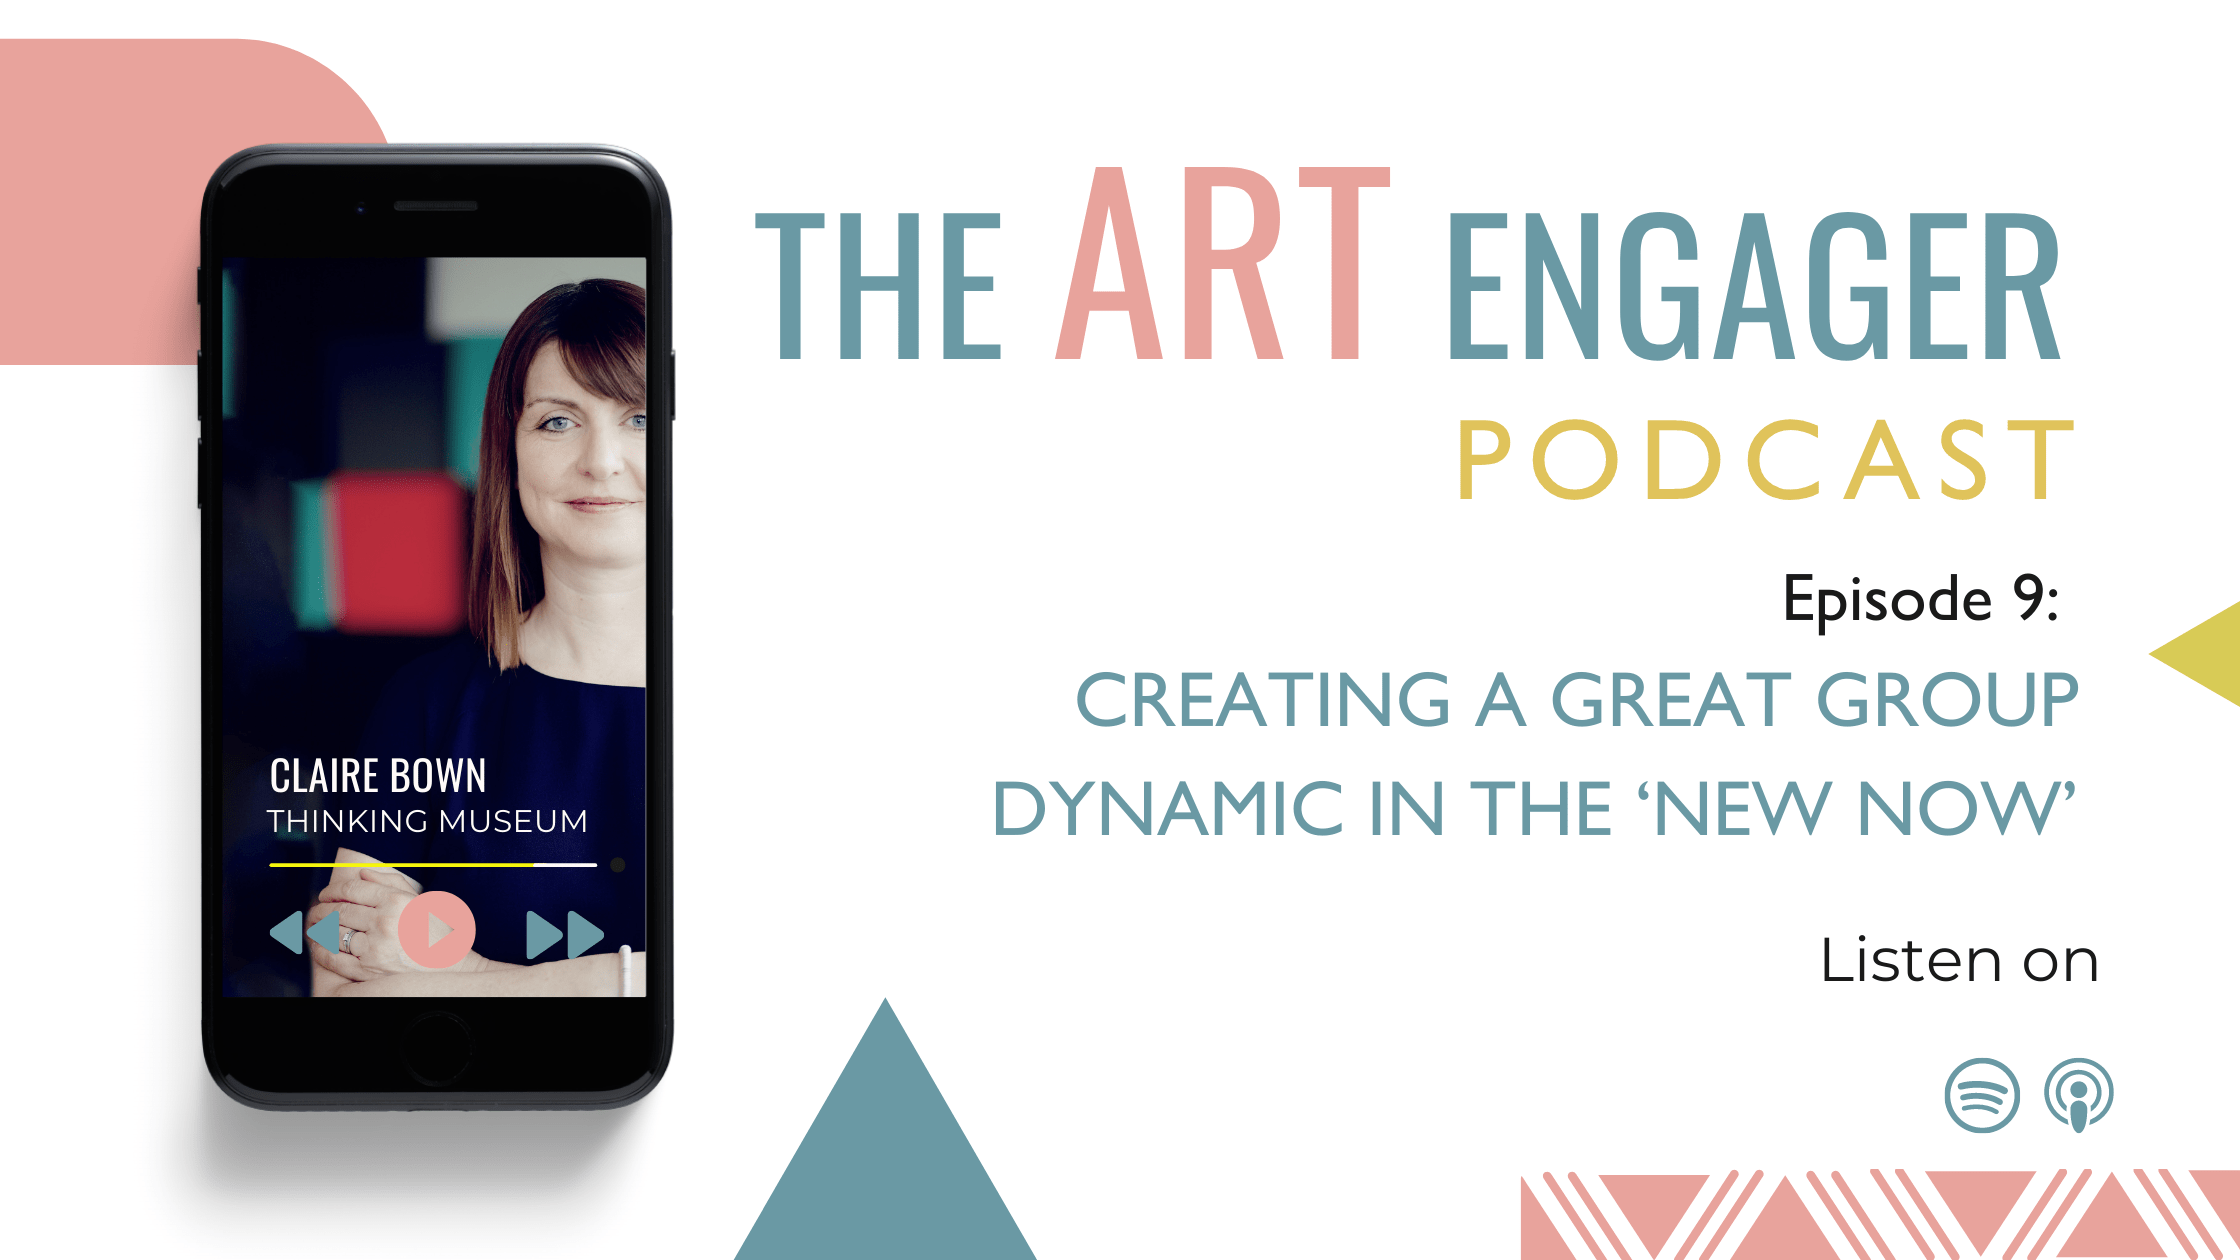 CREATING A GREAT GROUP DYNAMIC IN THE 'NEW NOW'